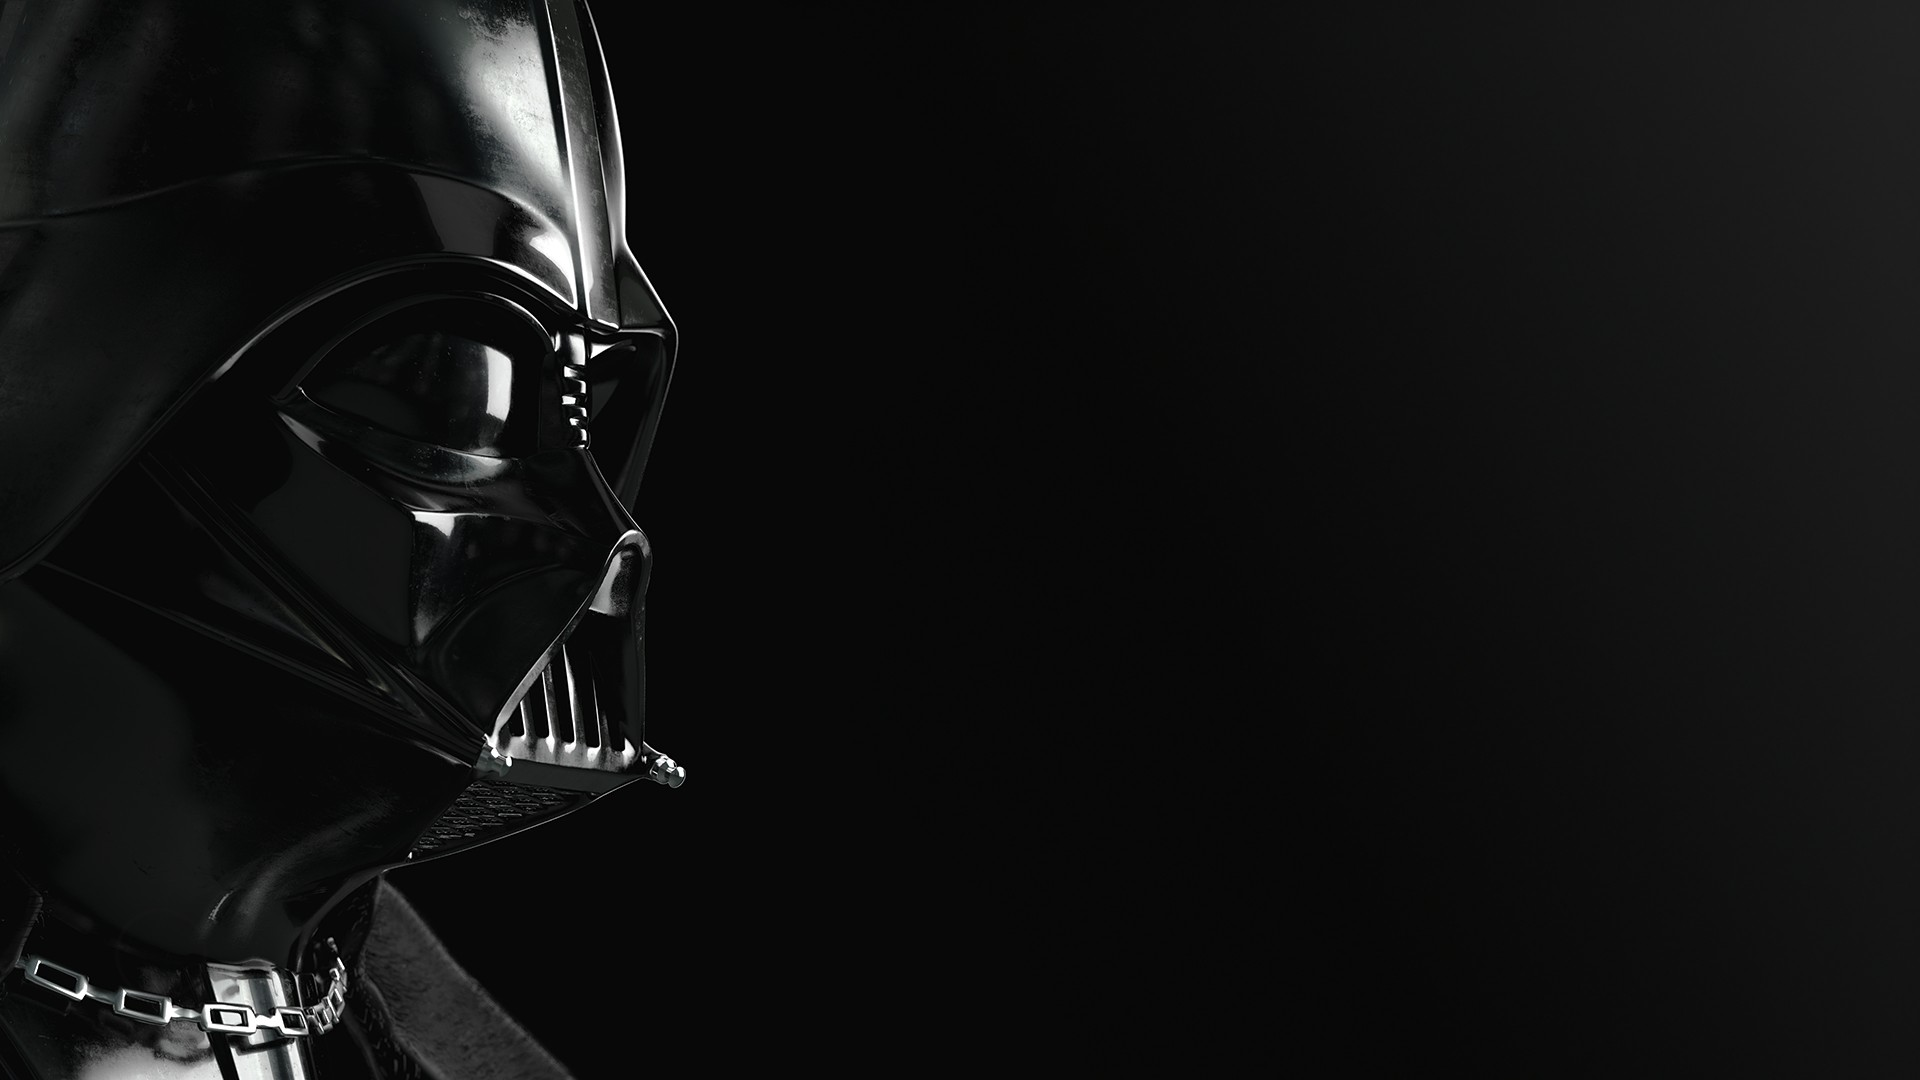 Darth Vader wallpaper HD 1920x1080 Download free awesome HD